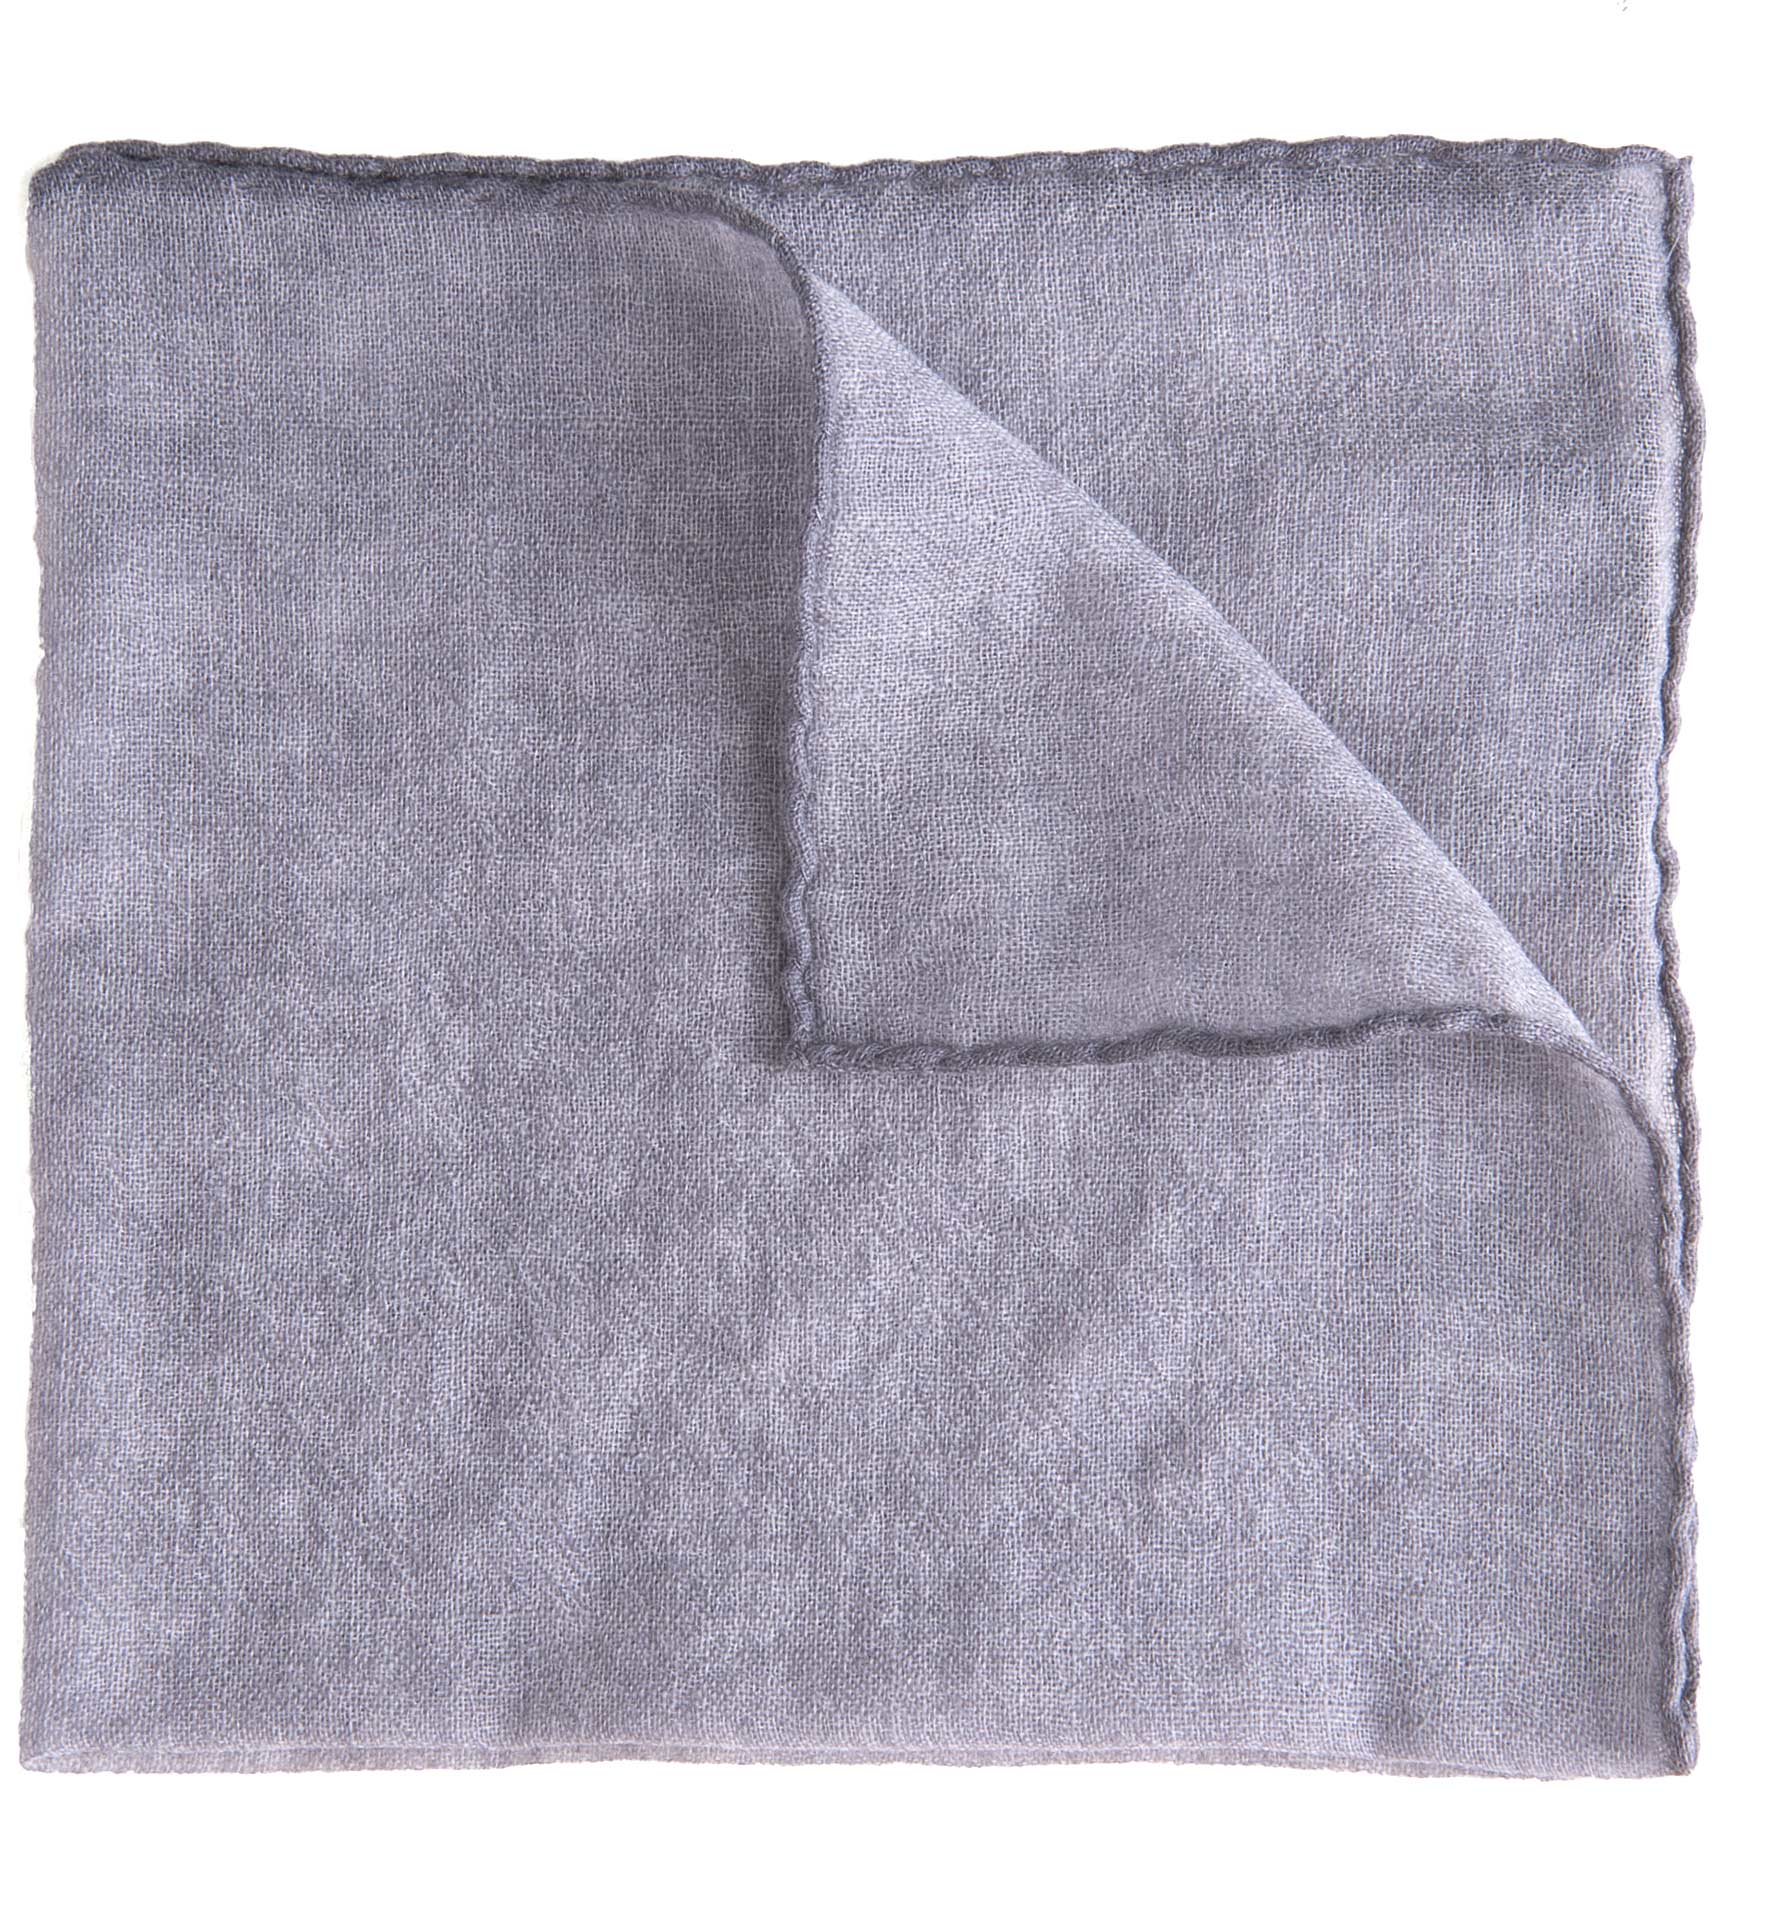 Zoom Image of Stone Wool Pocket Square